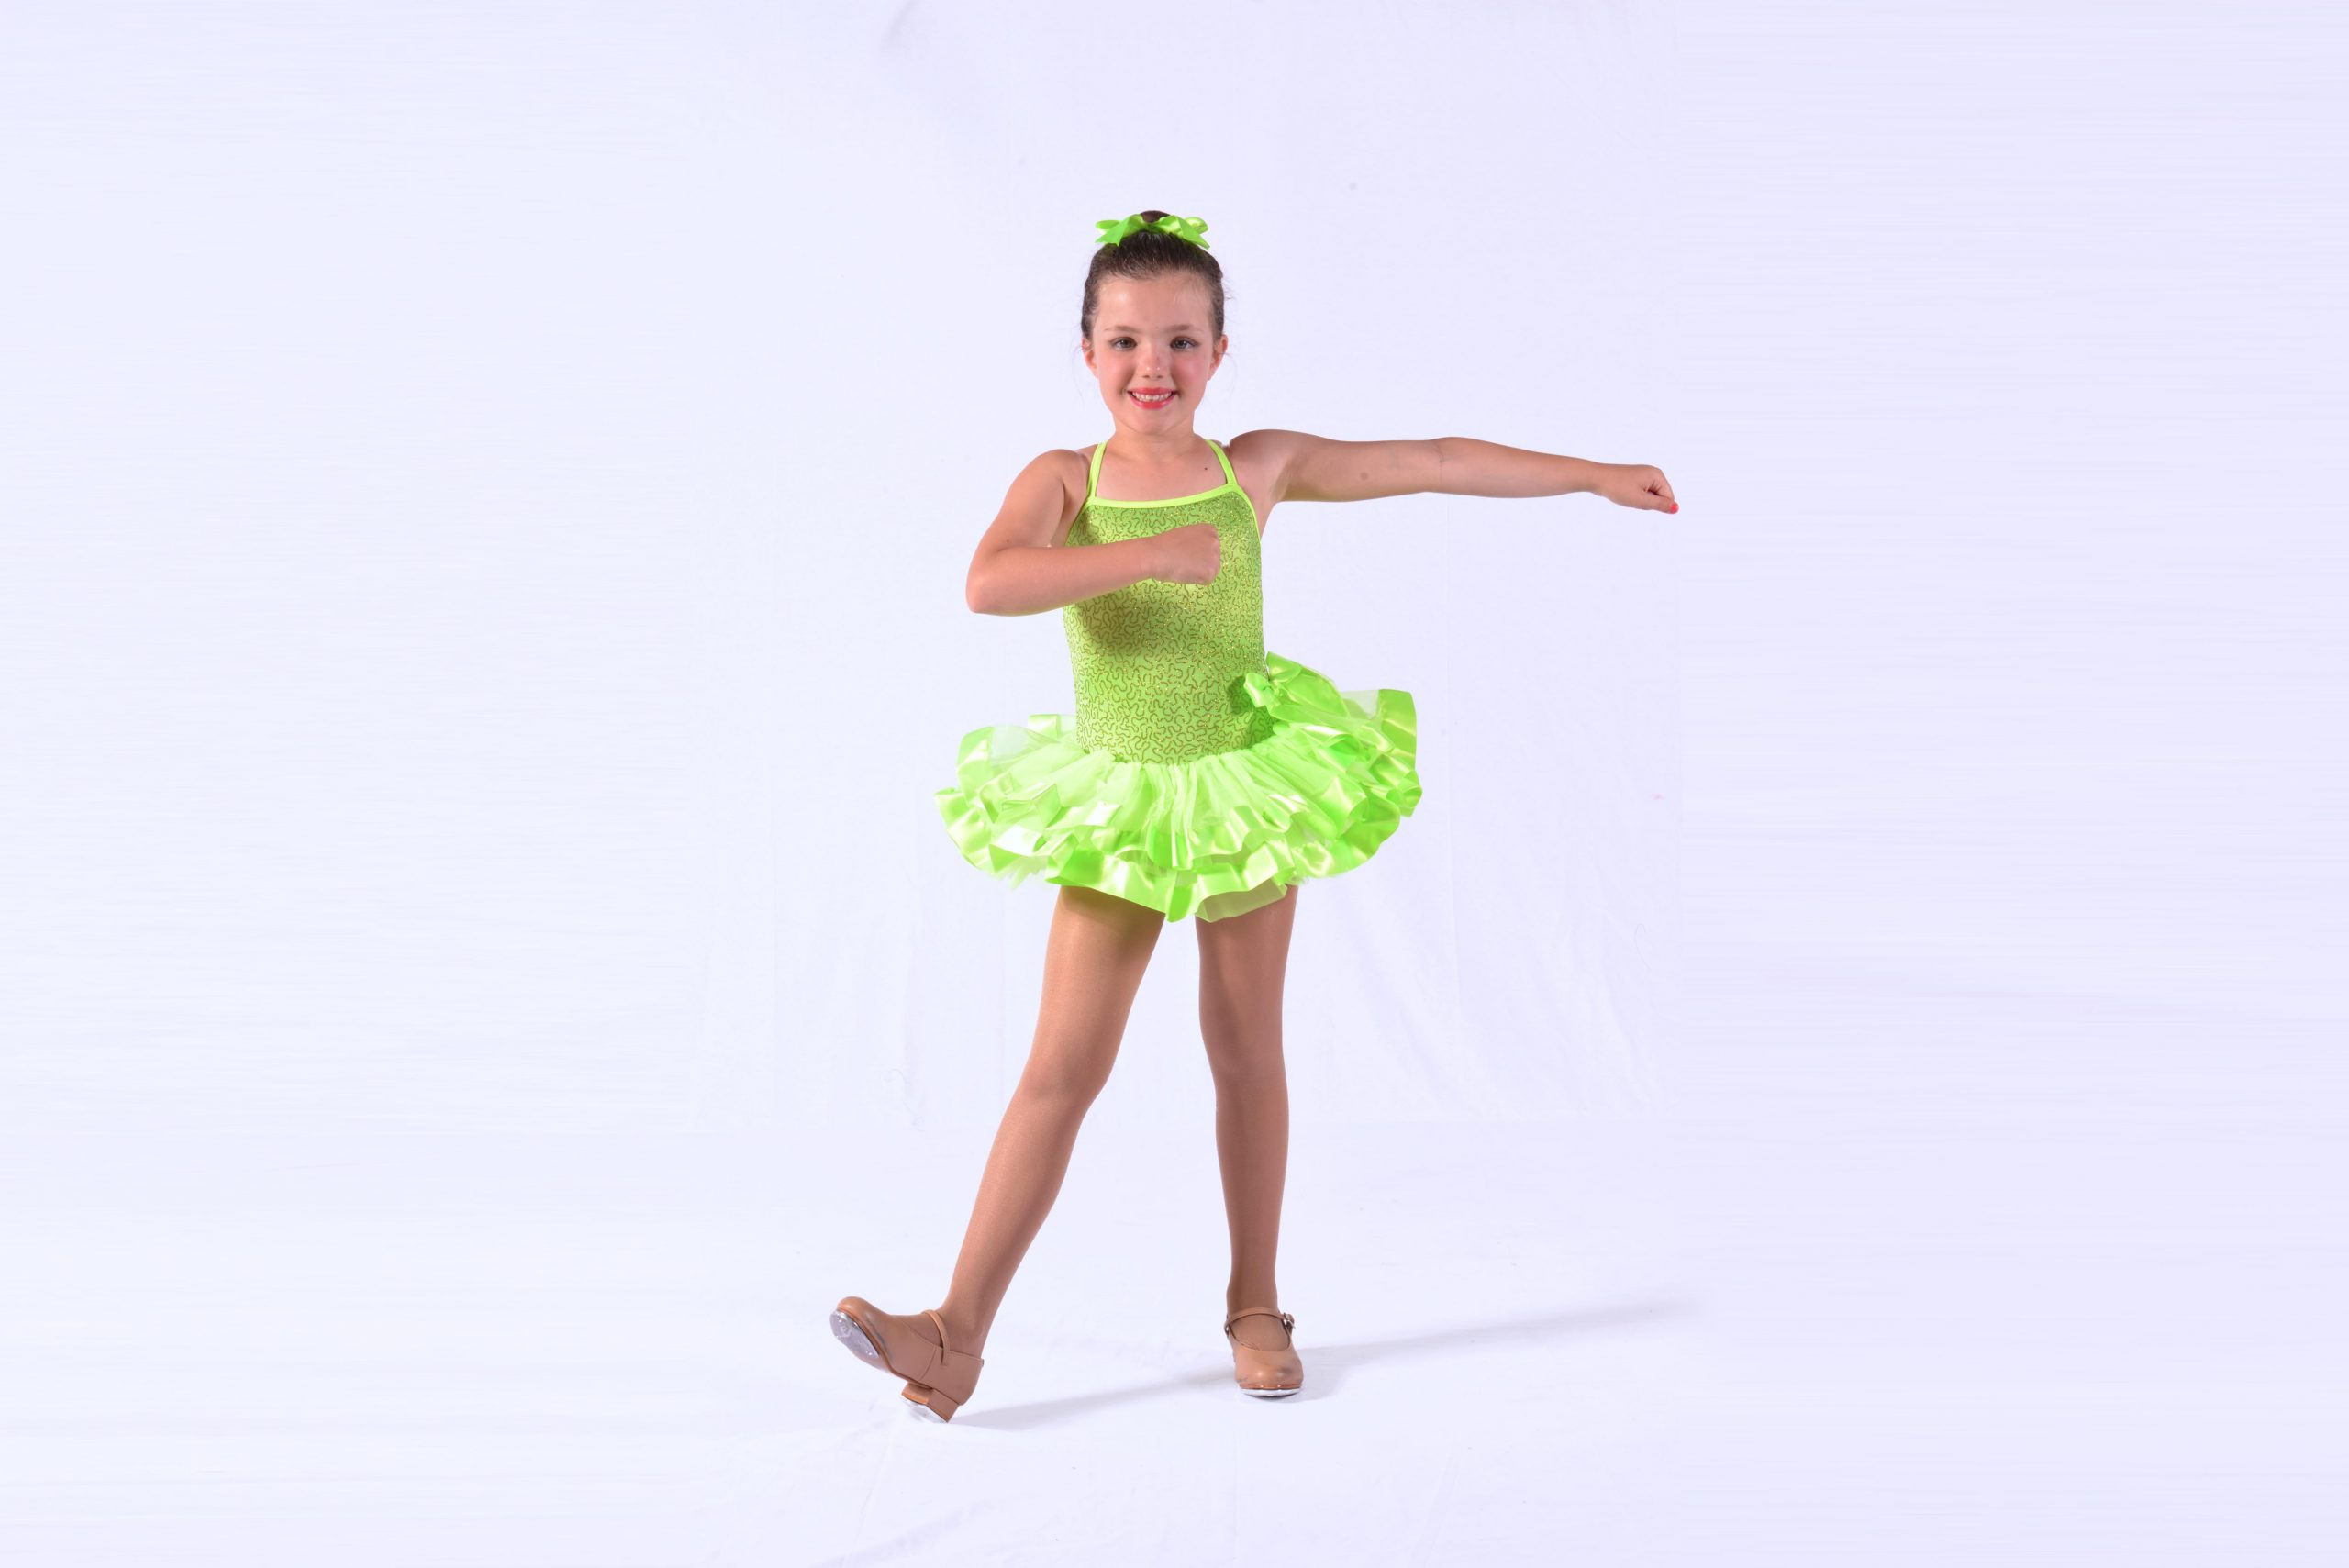 Diakosmos_Dance_Academy_Our_Classes_All_Abilities_Tap